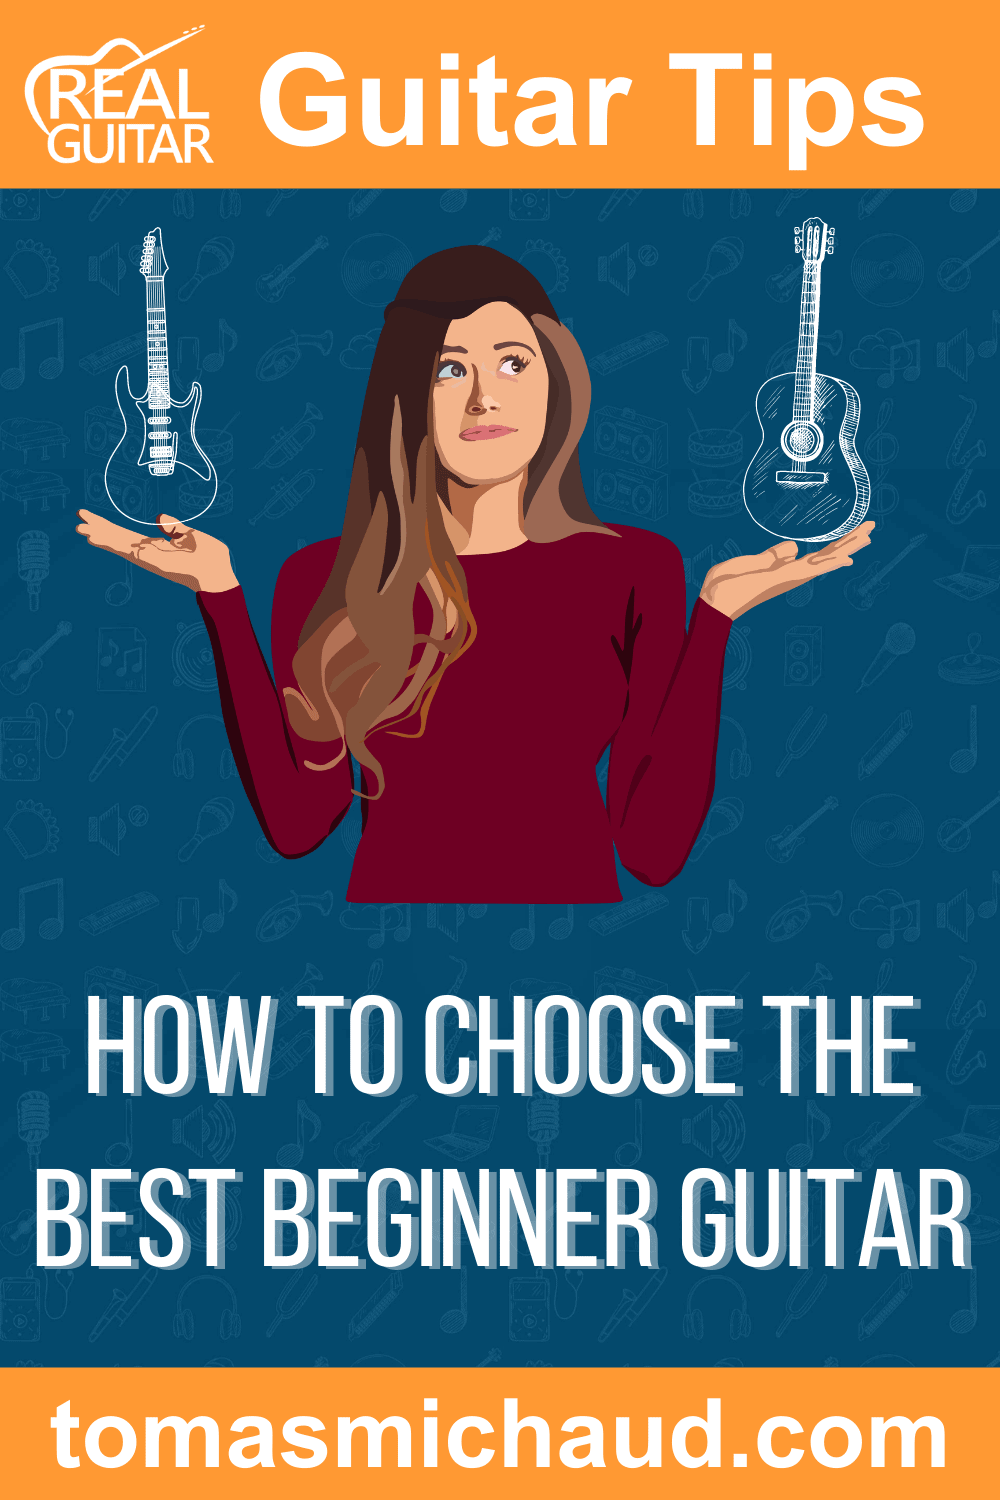 How To Choose The Best Beginner Guitar